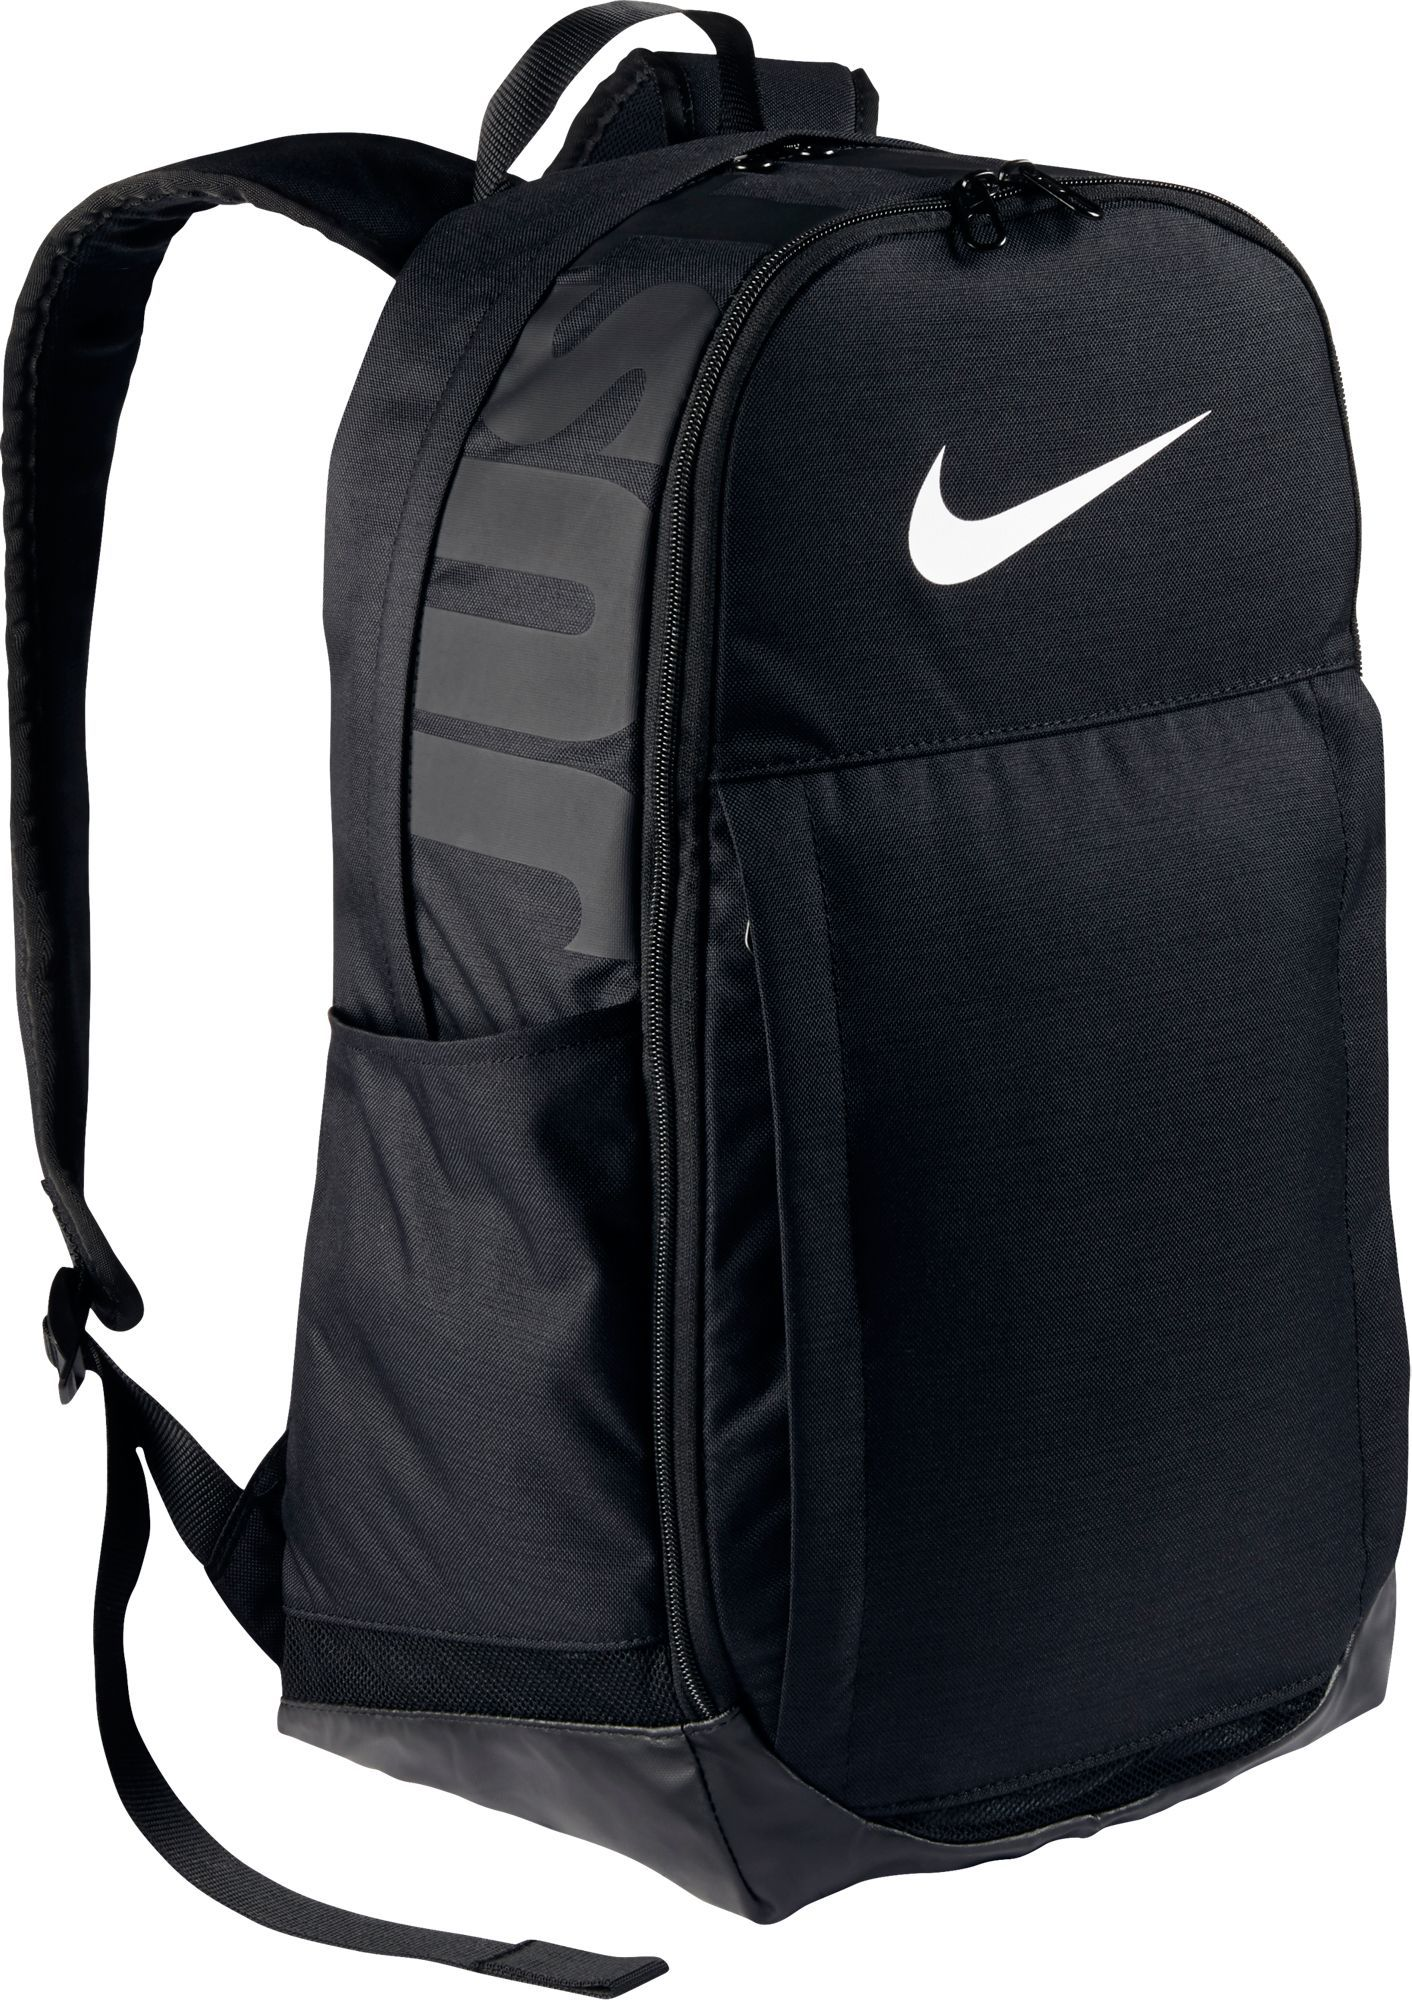 6830579df10b8 Nike Brasilia XL Training Backpack